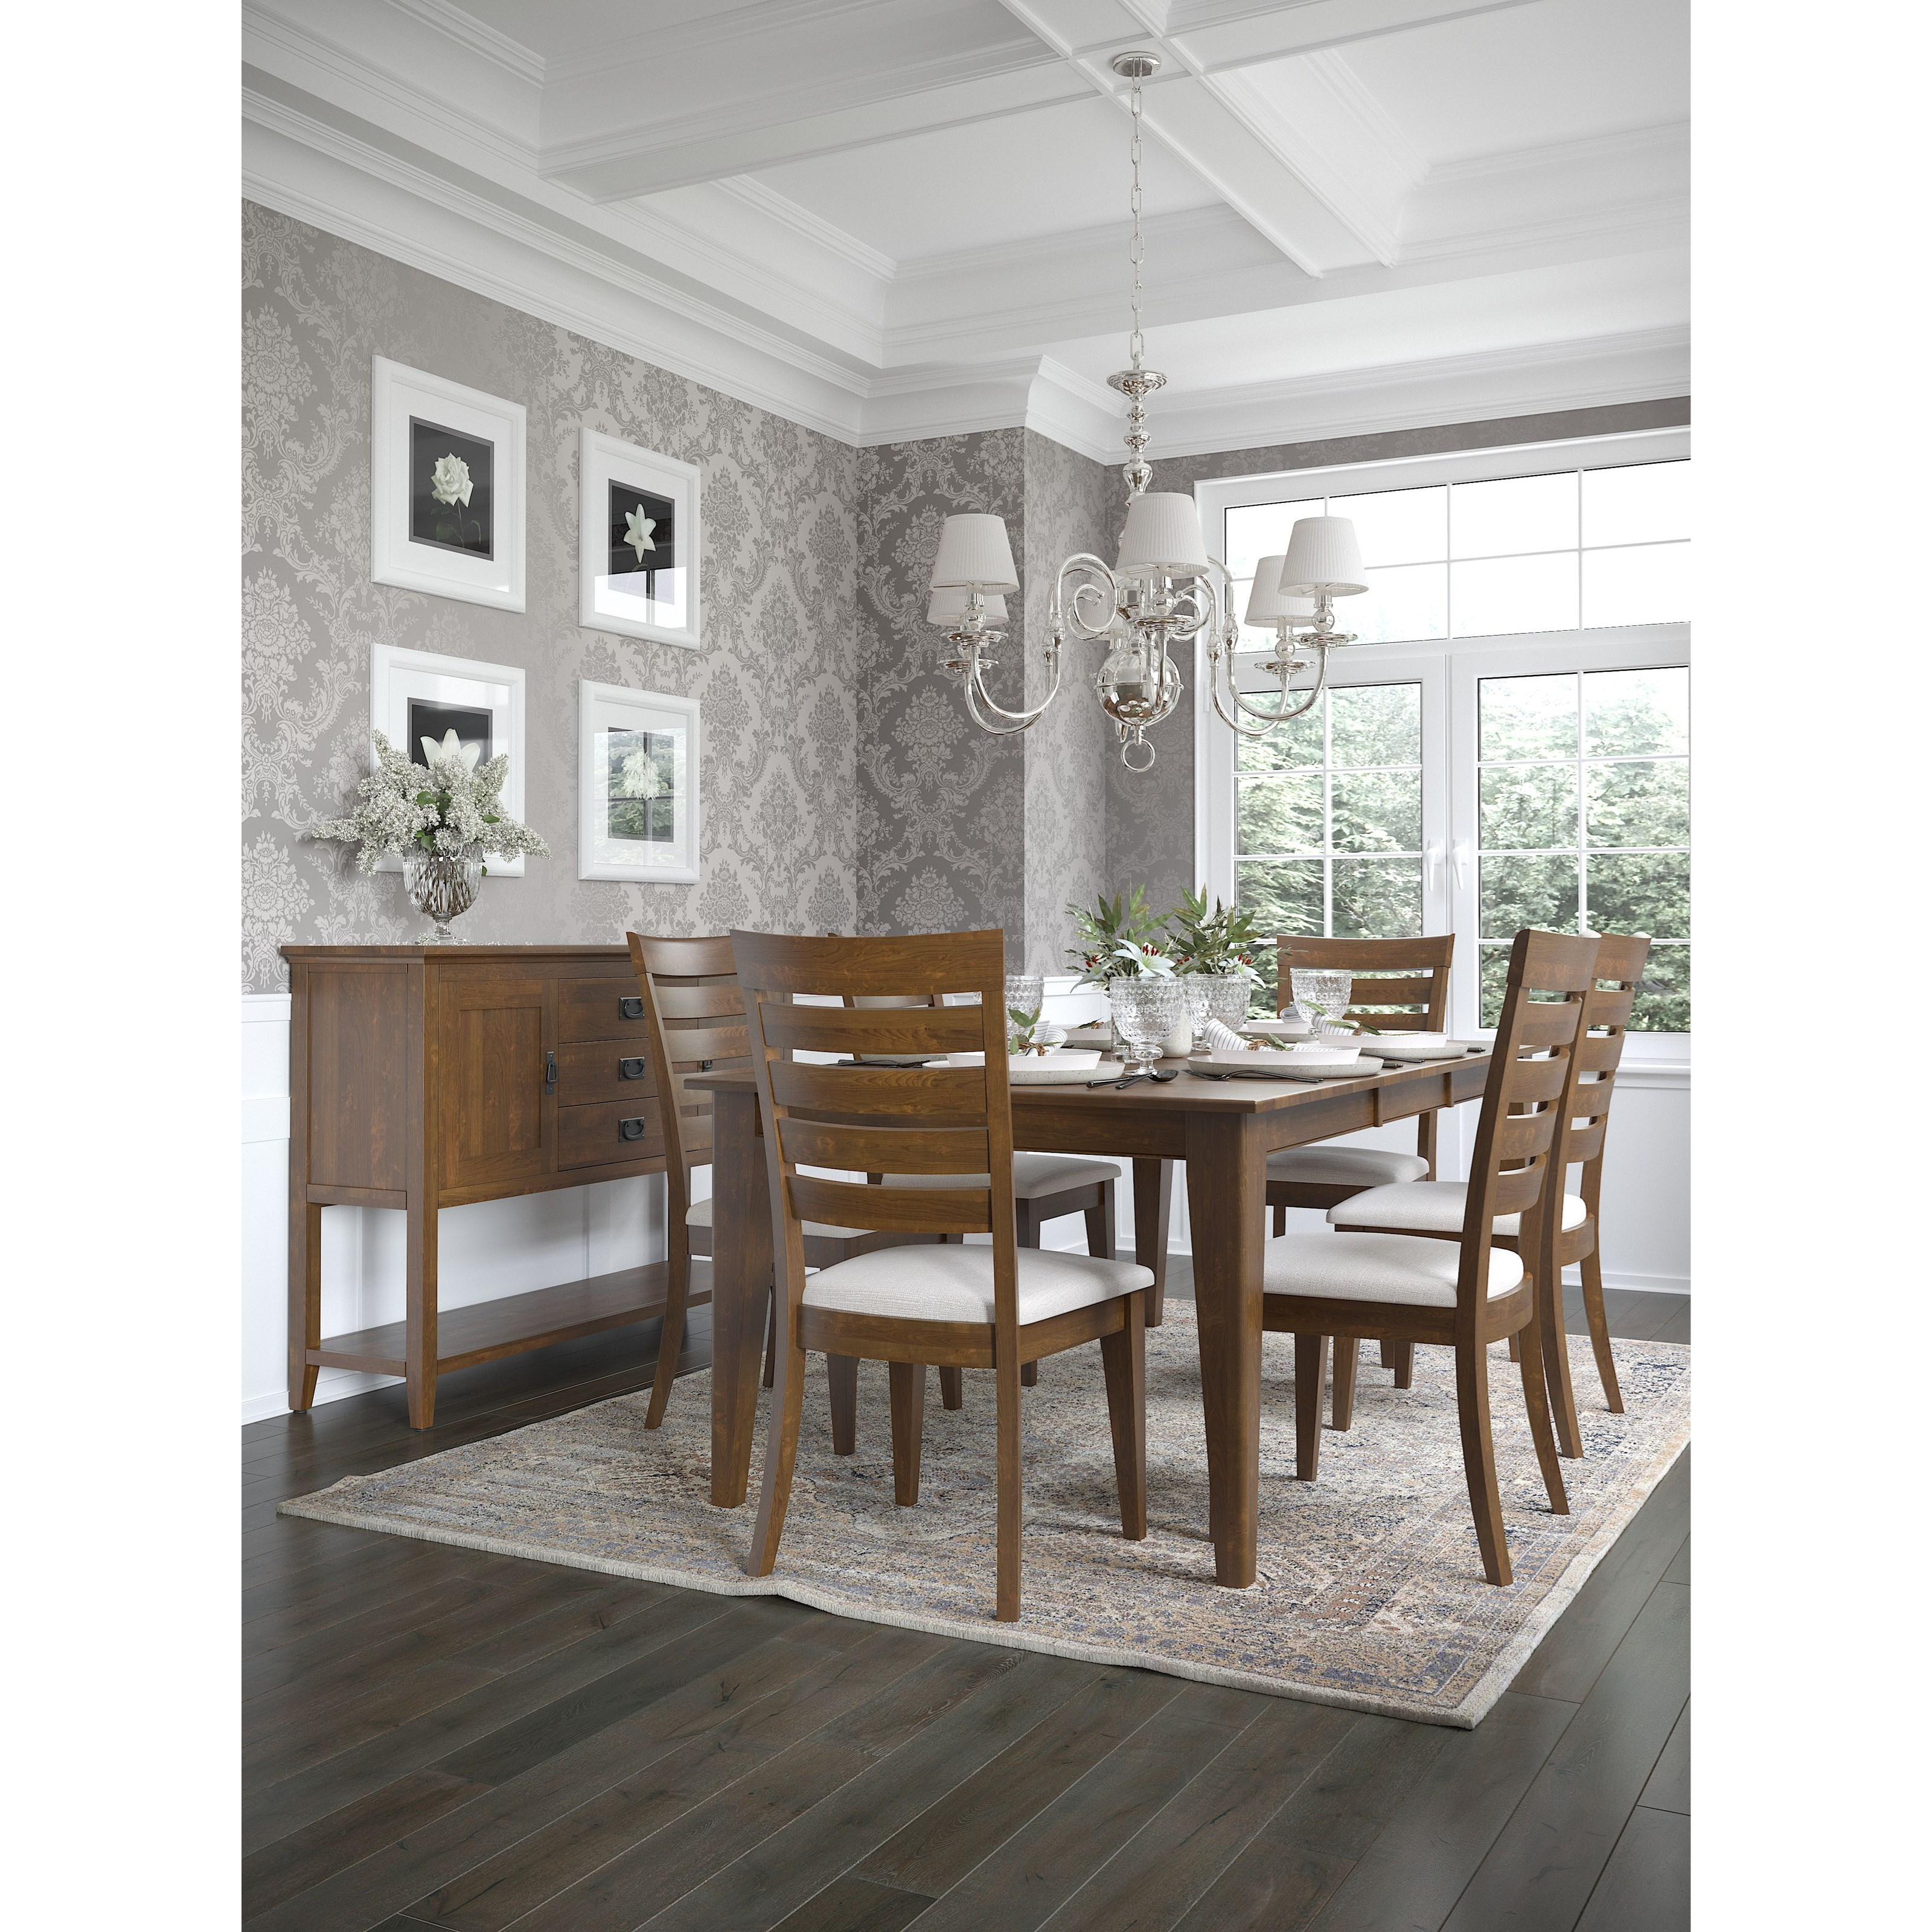 Gourmet - Custom Dining Dining Table Set by Canadel at Dinette Depot